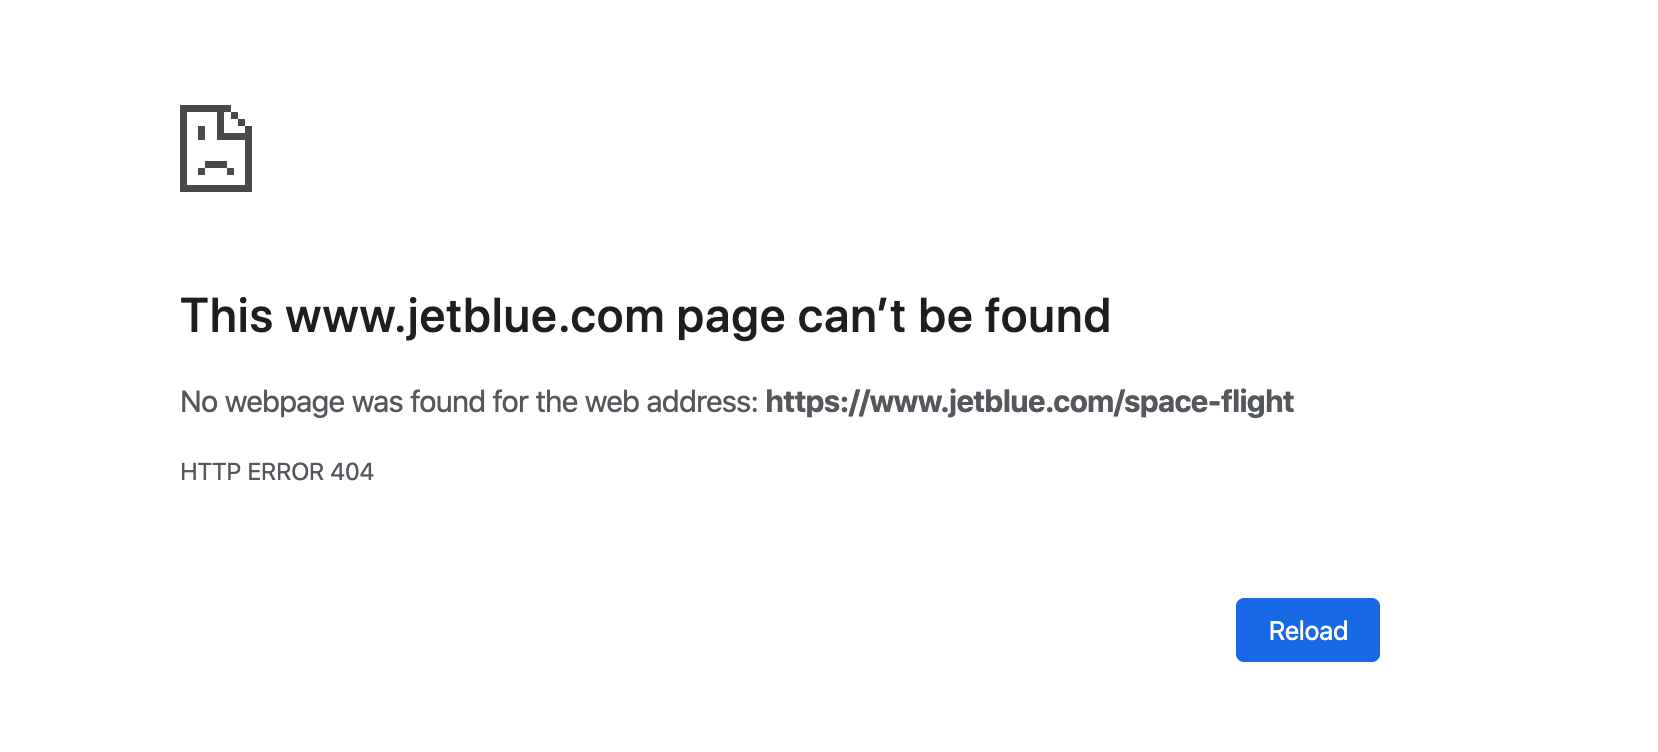 A screenshot showing a broken link to a Jet Blue page.